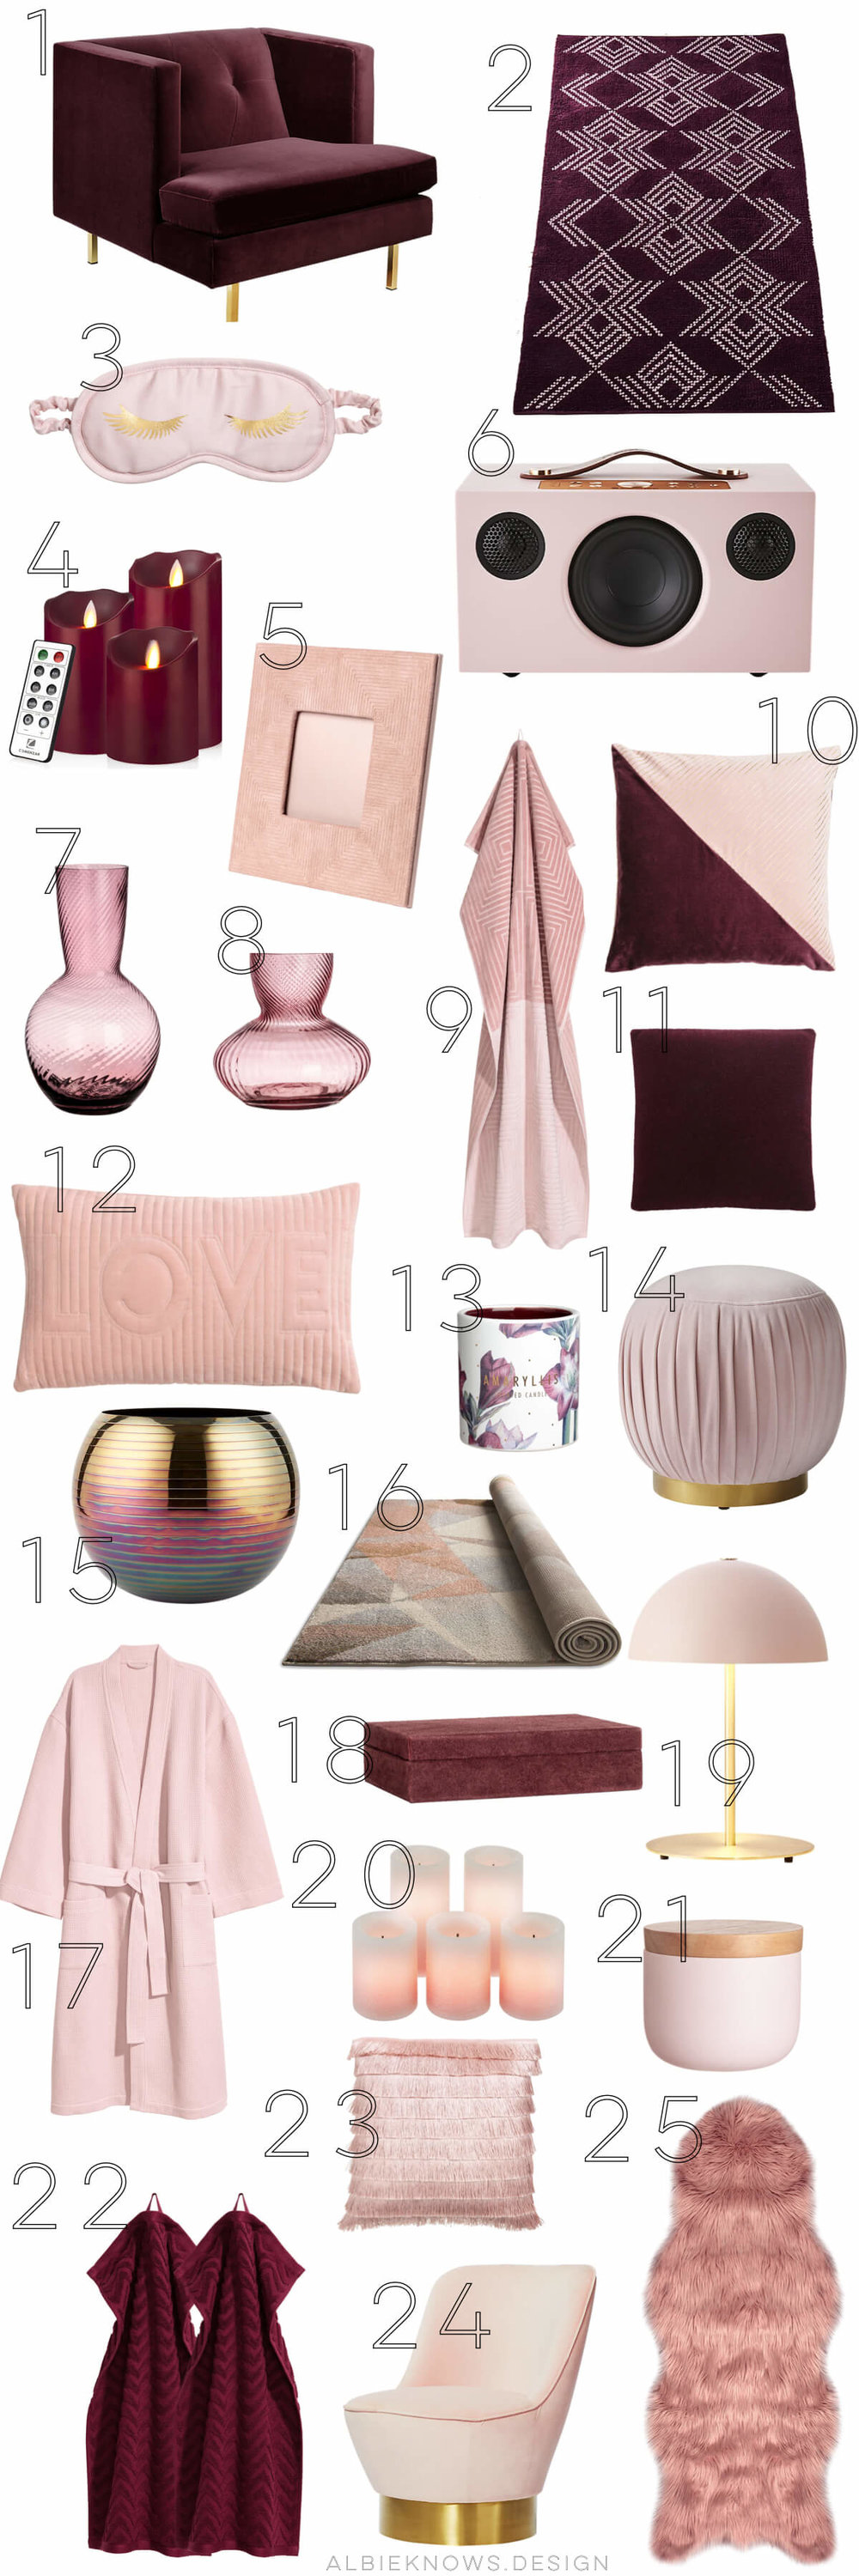 Albie Knows Valentine's Day Blush Pink & Burgundy Shopping List.jpeg